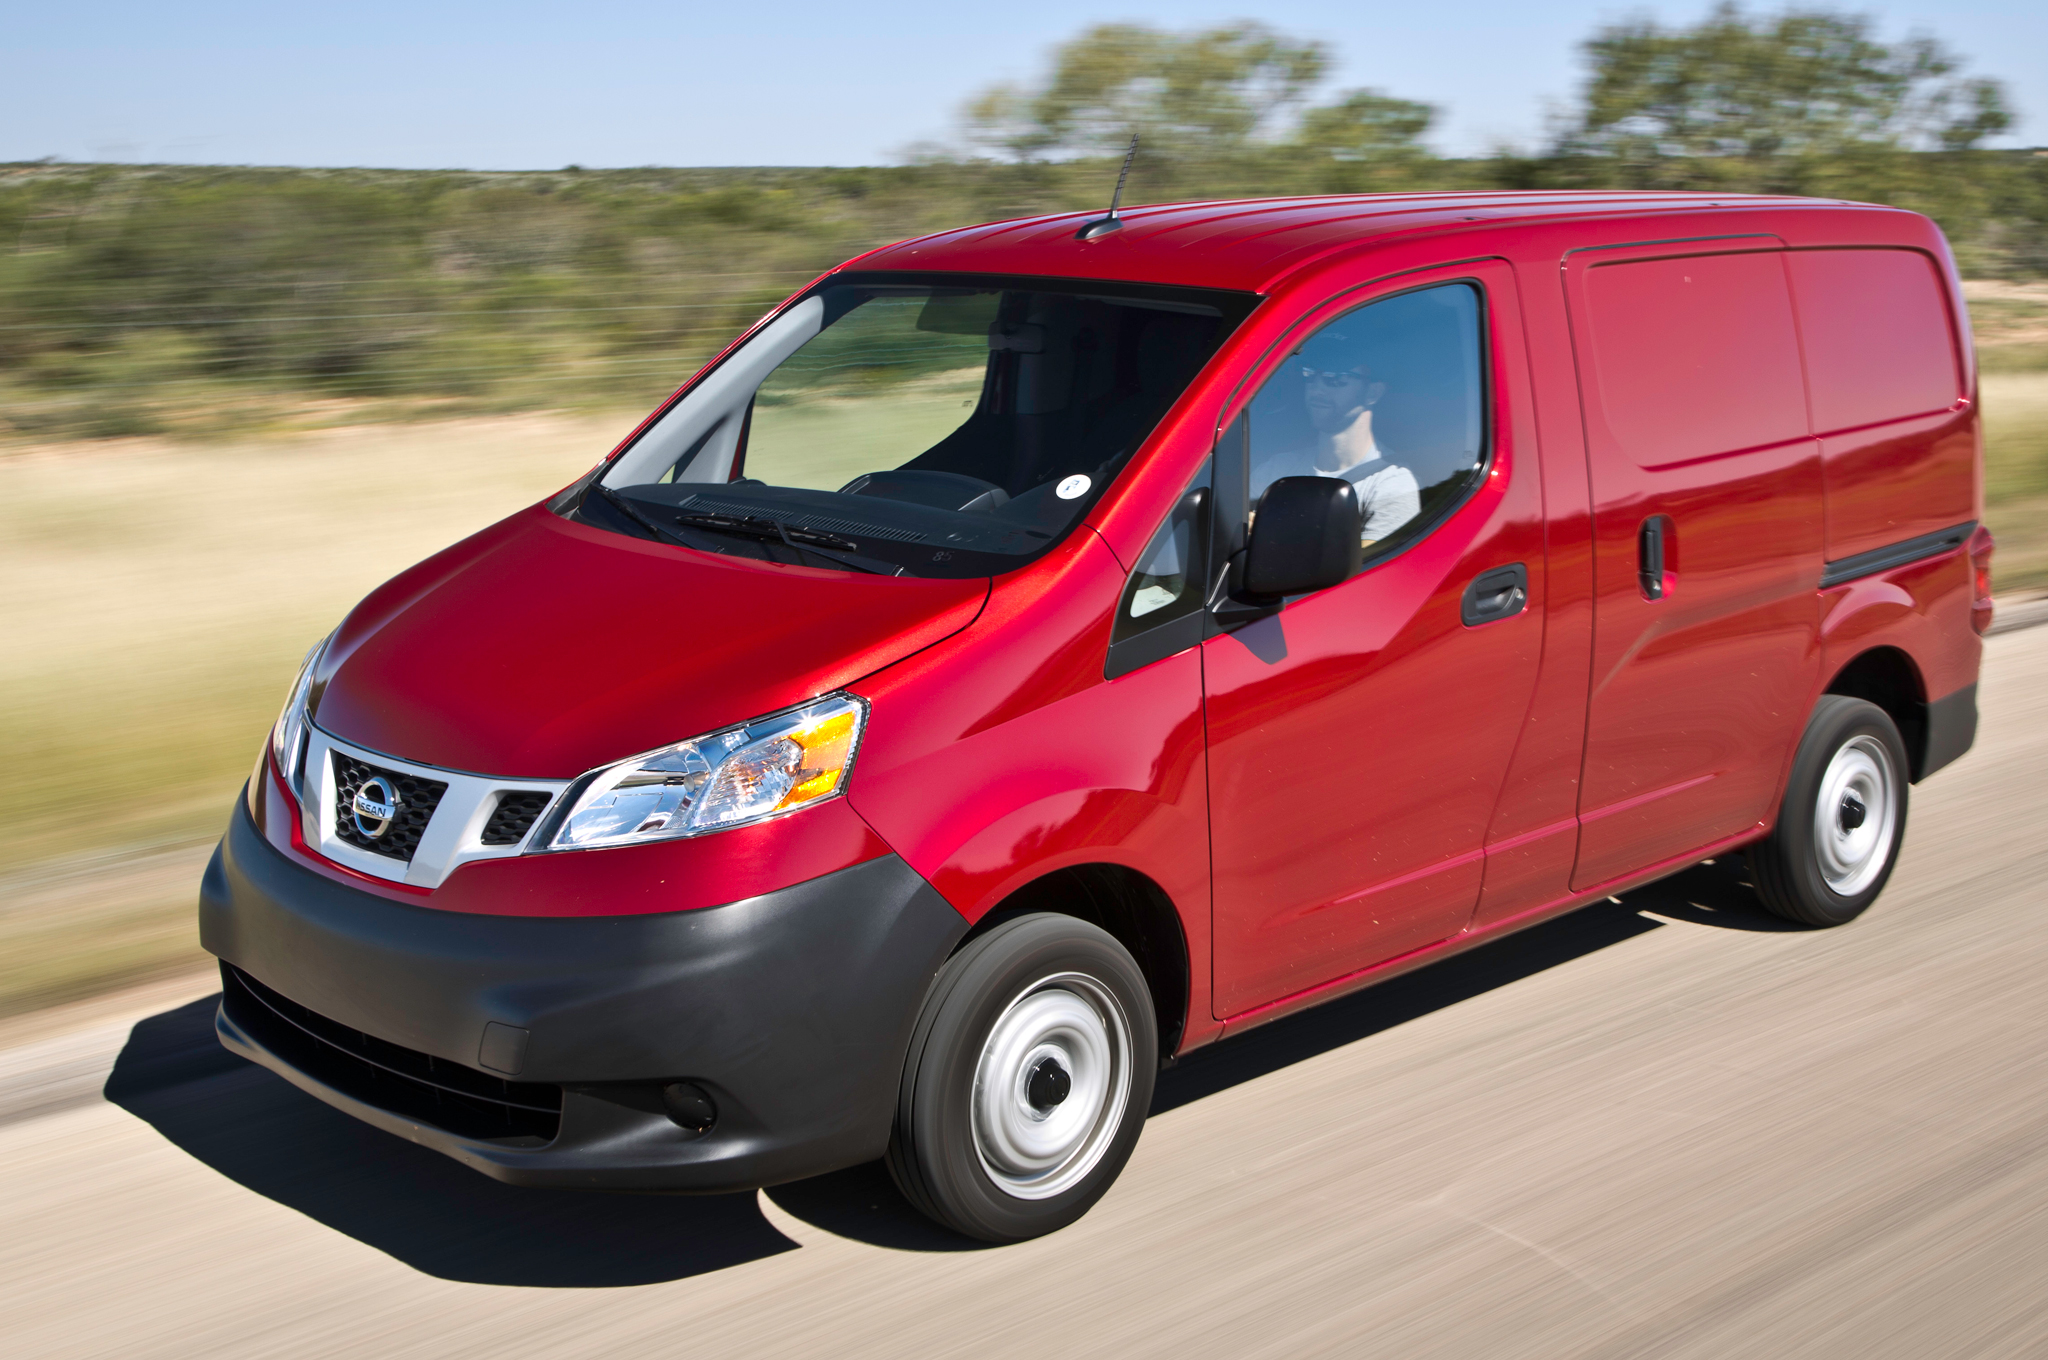 2014 Motor Trend Truck of the Year Contender: Nissan NV200